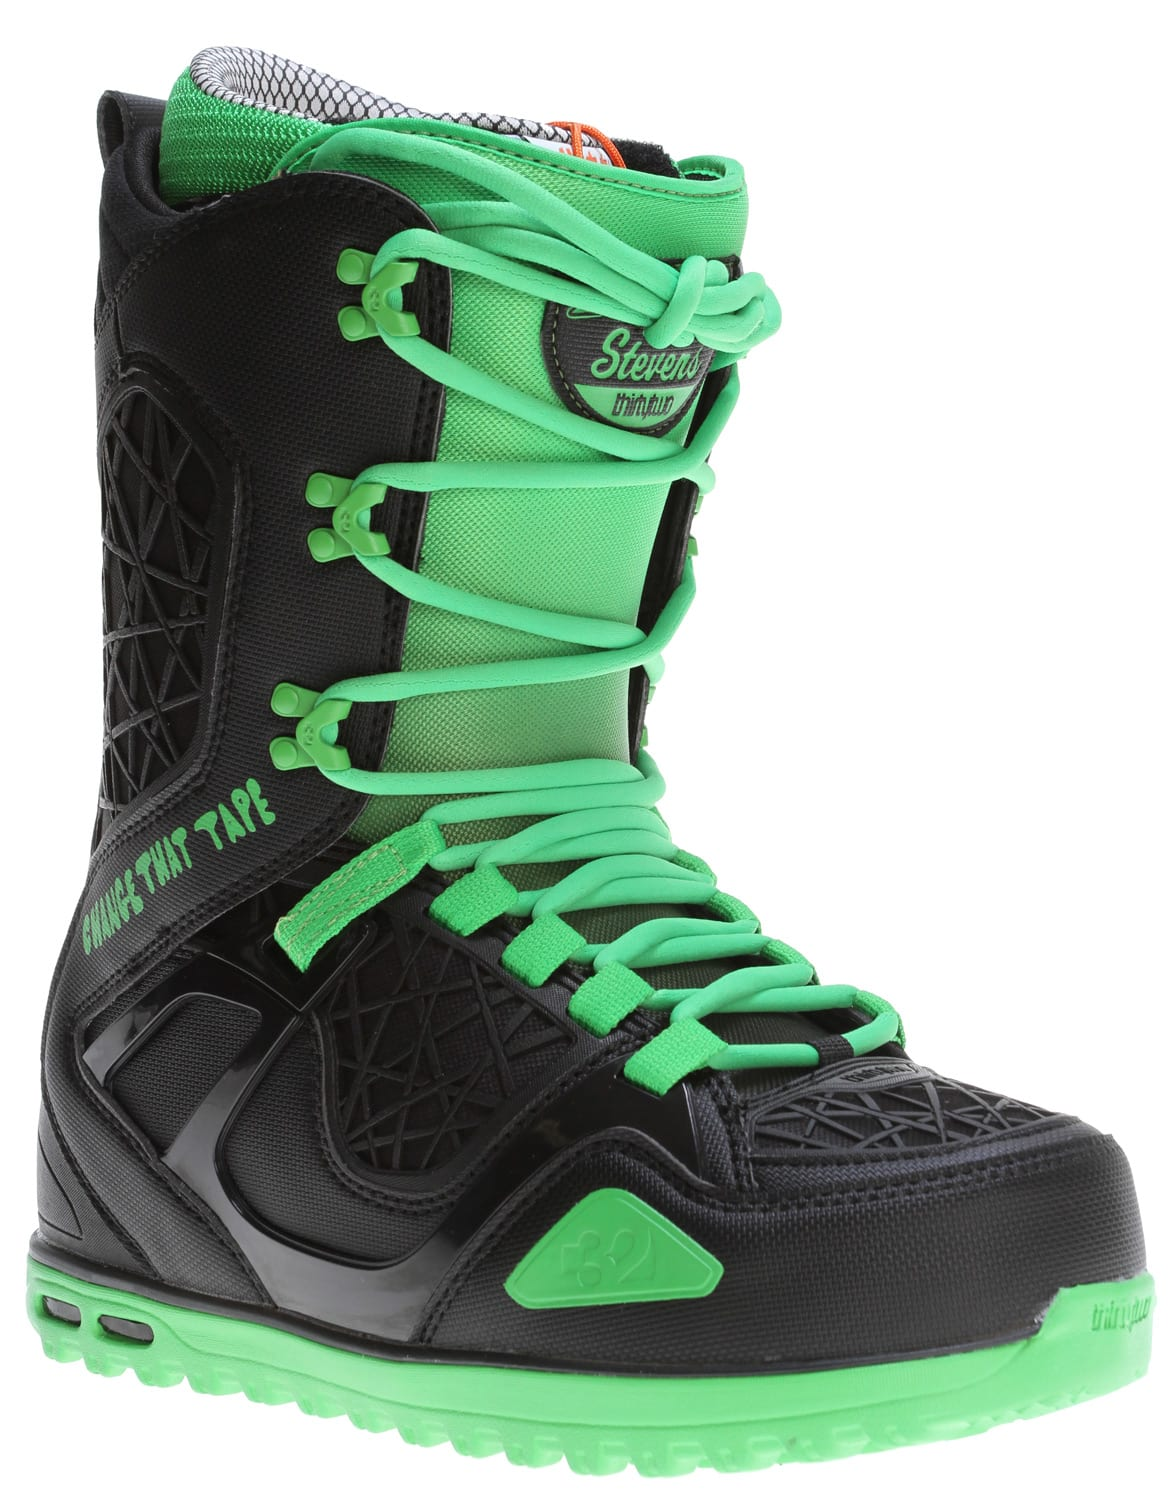 32 - Thirty Two TM-Two Snowboard Boots - thumbnail 2 e2836c2f7678